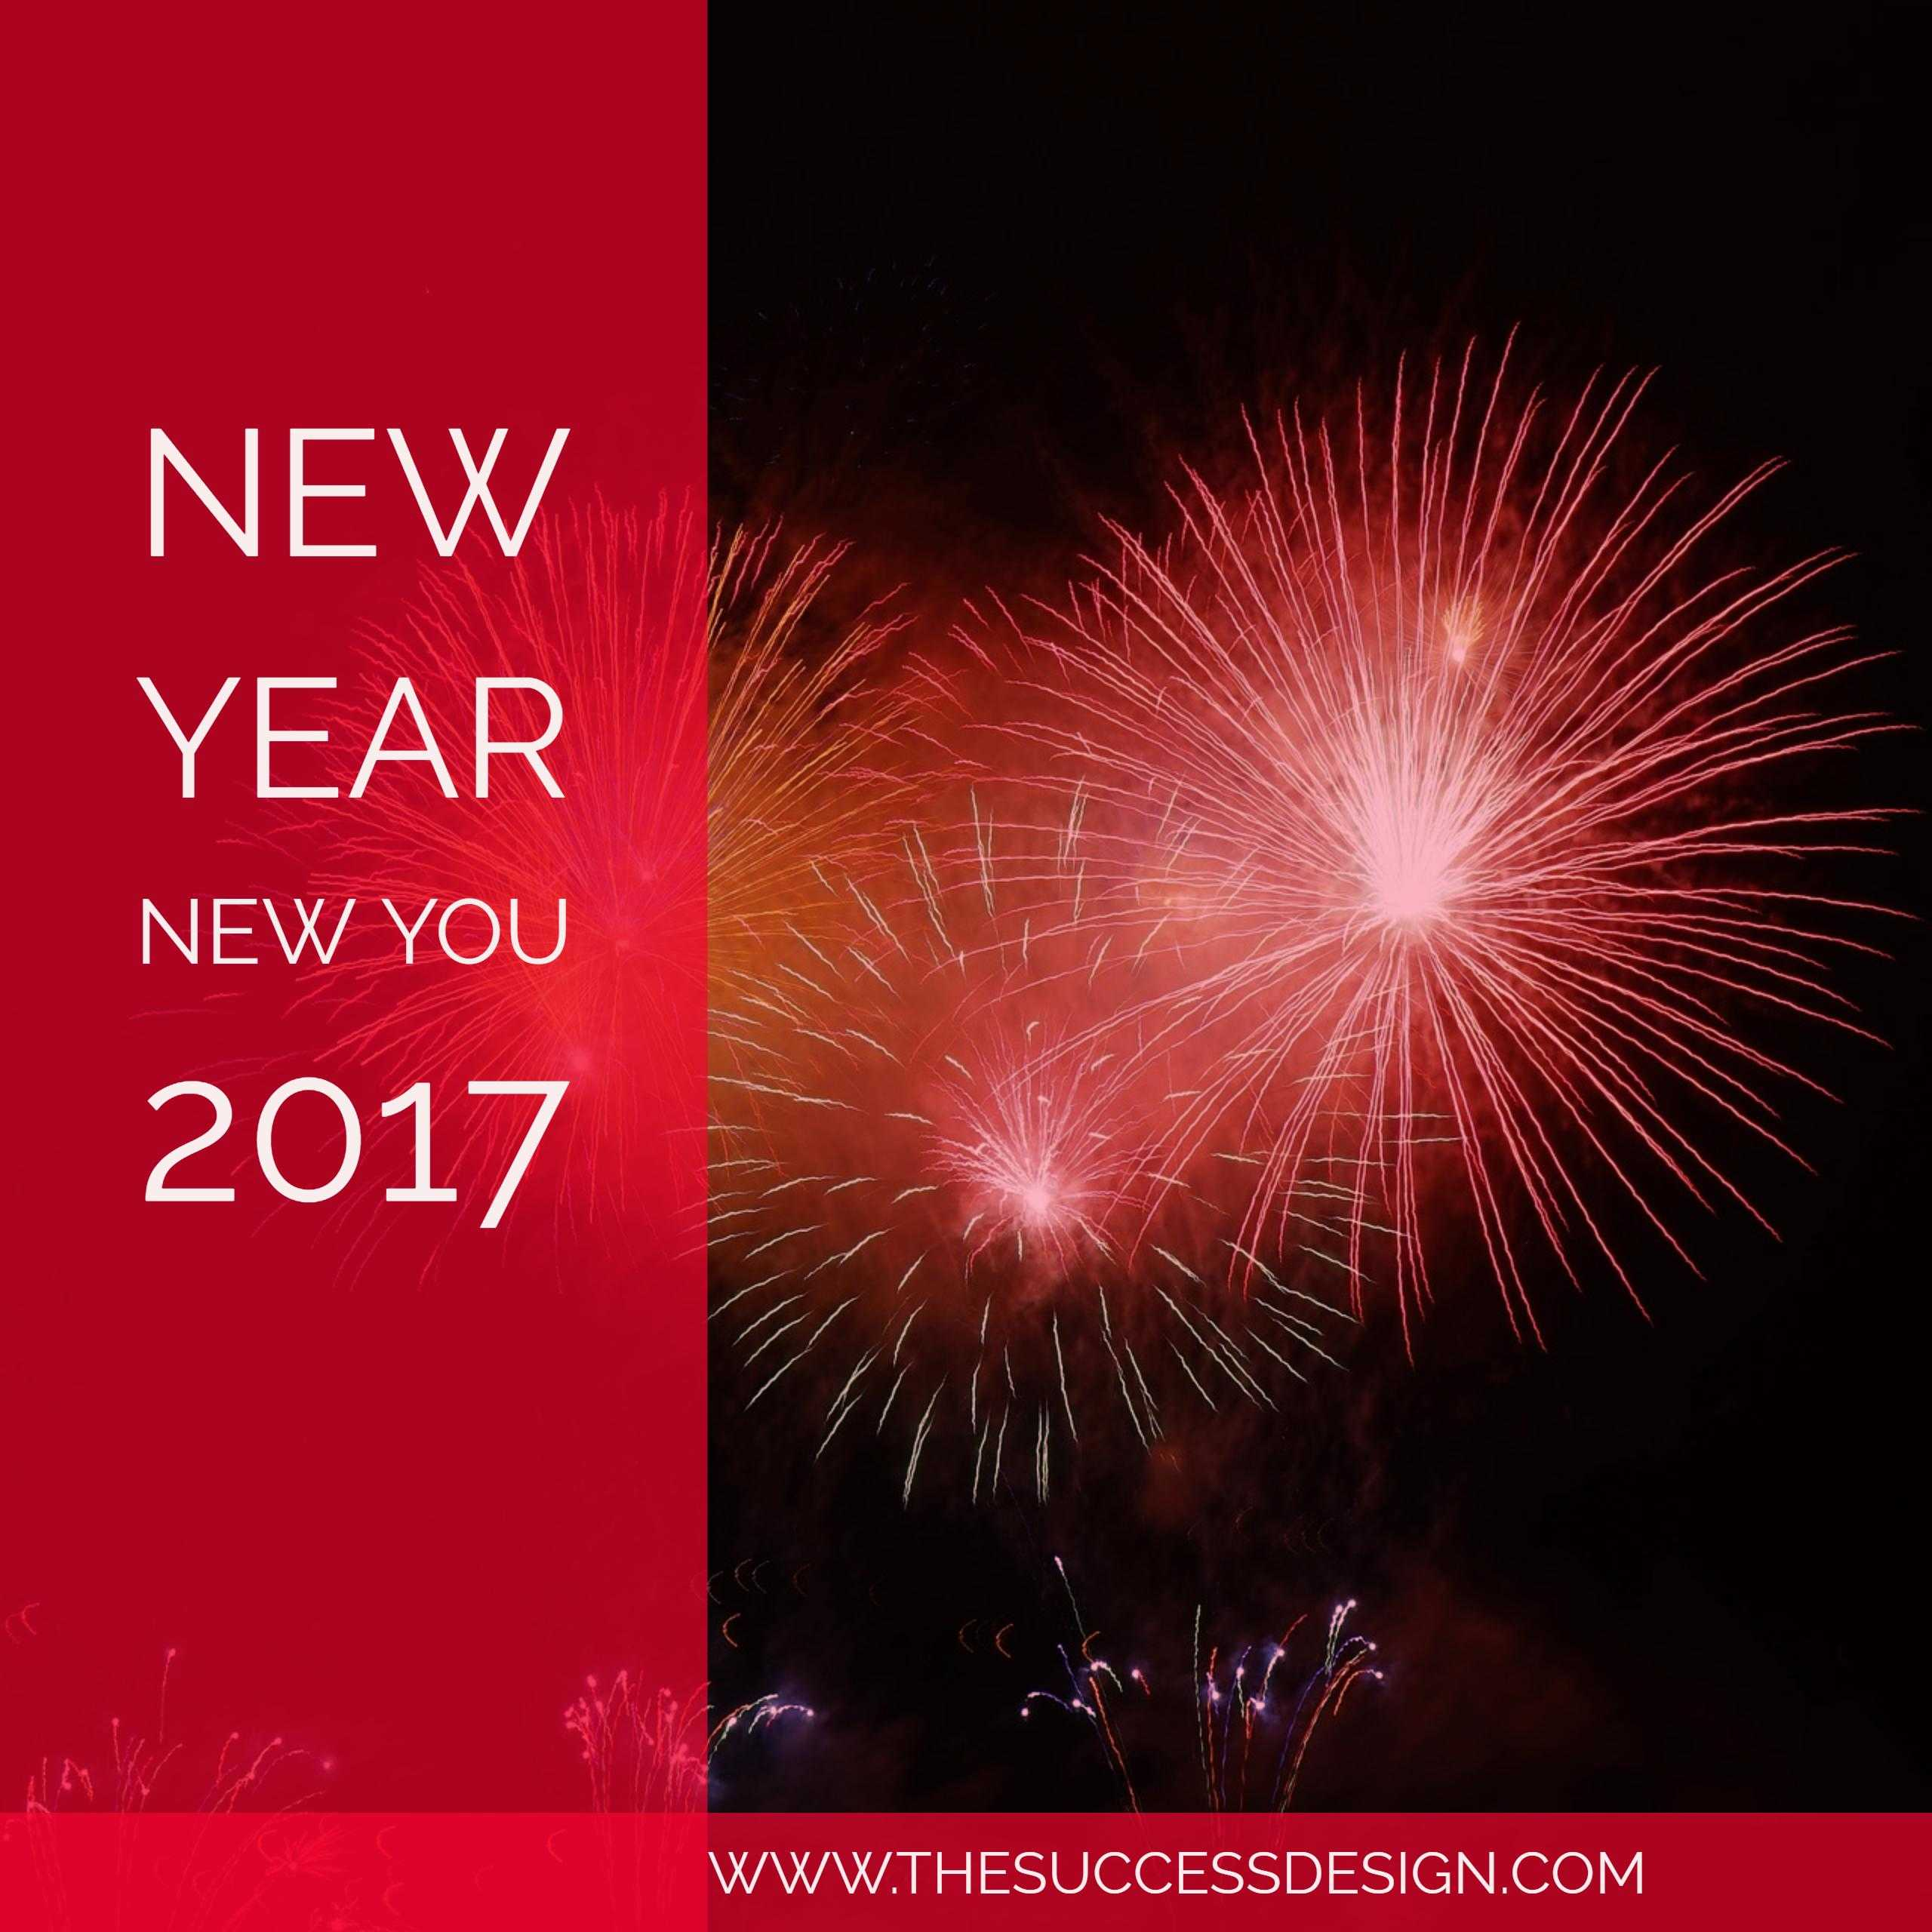 New Year New You 2017